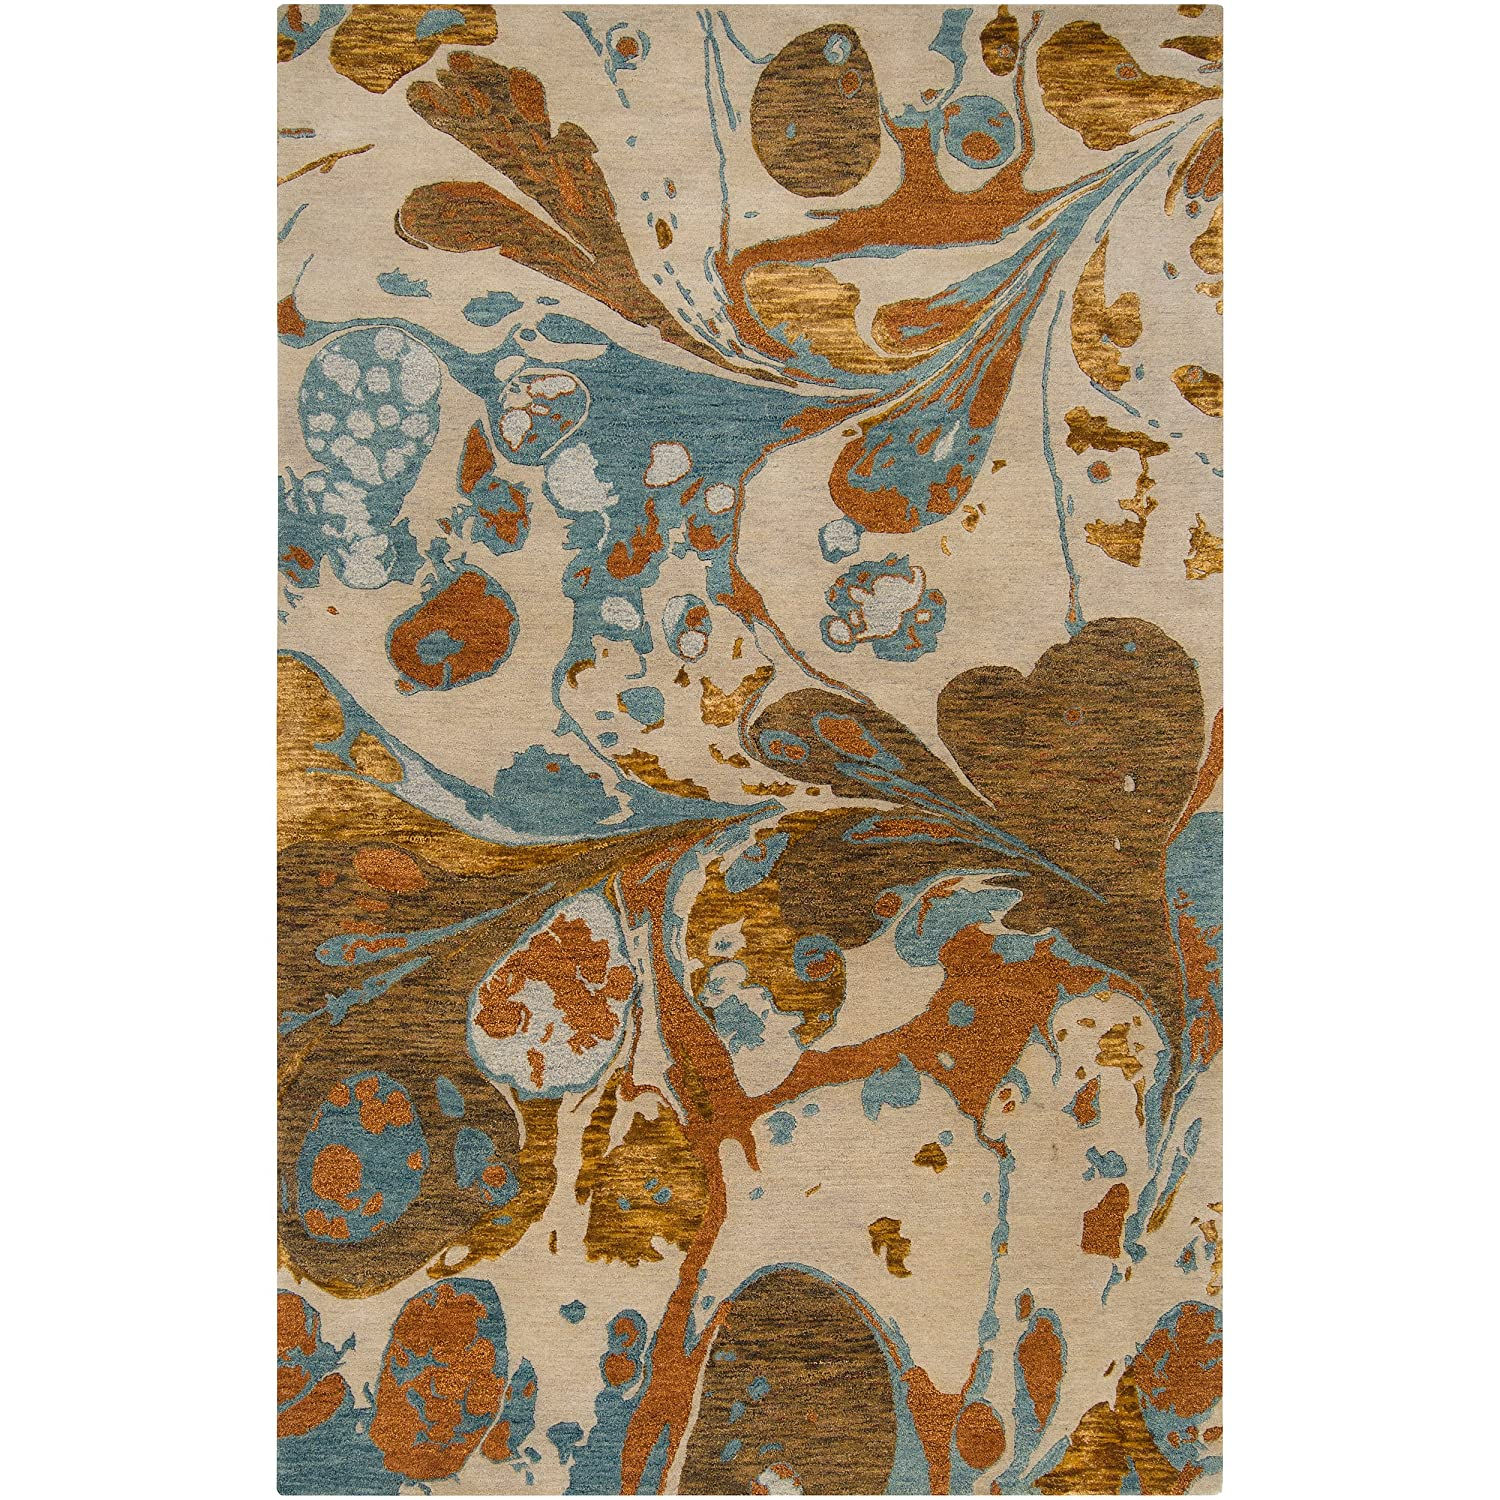 Amazon.com: Surya Banshee BAN-3312 Contemporary Hand Tufted 100 ... - Amazon.com: Surya Banshee BAN-3312 Contemporary Hand Tufted 100% New  Zealand Wool Ivory 2' x 3' Abstract Accent Rug: Kitchen & Dining